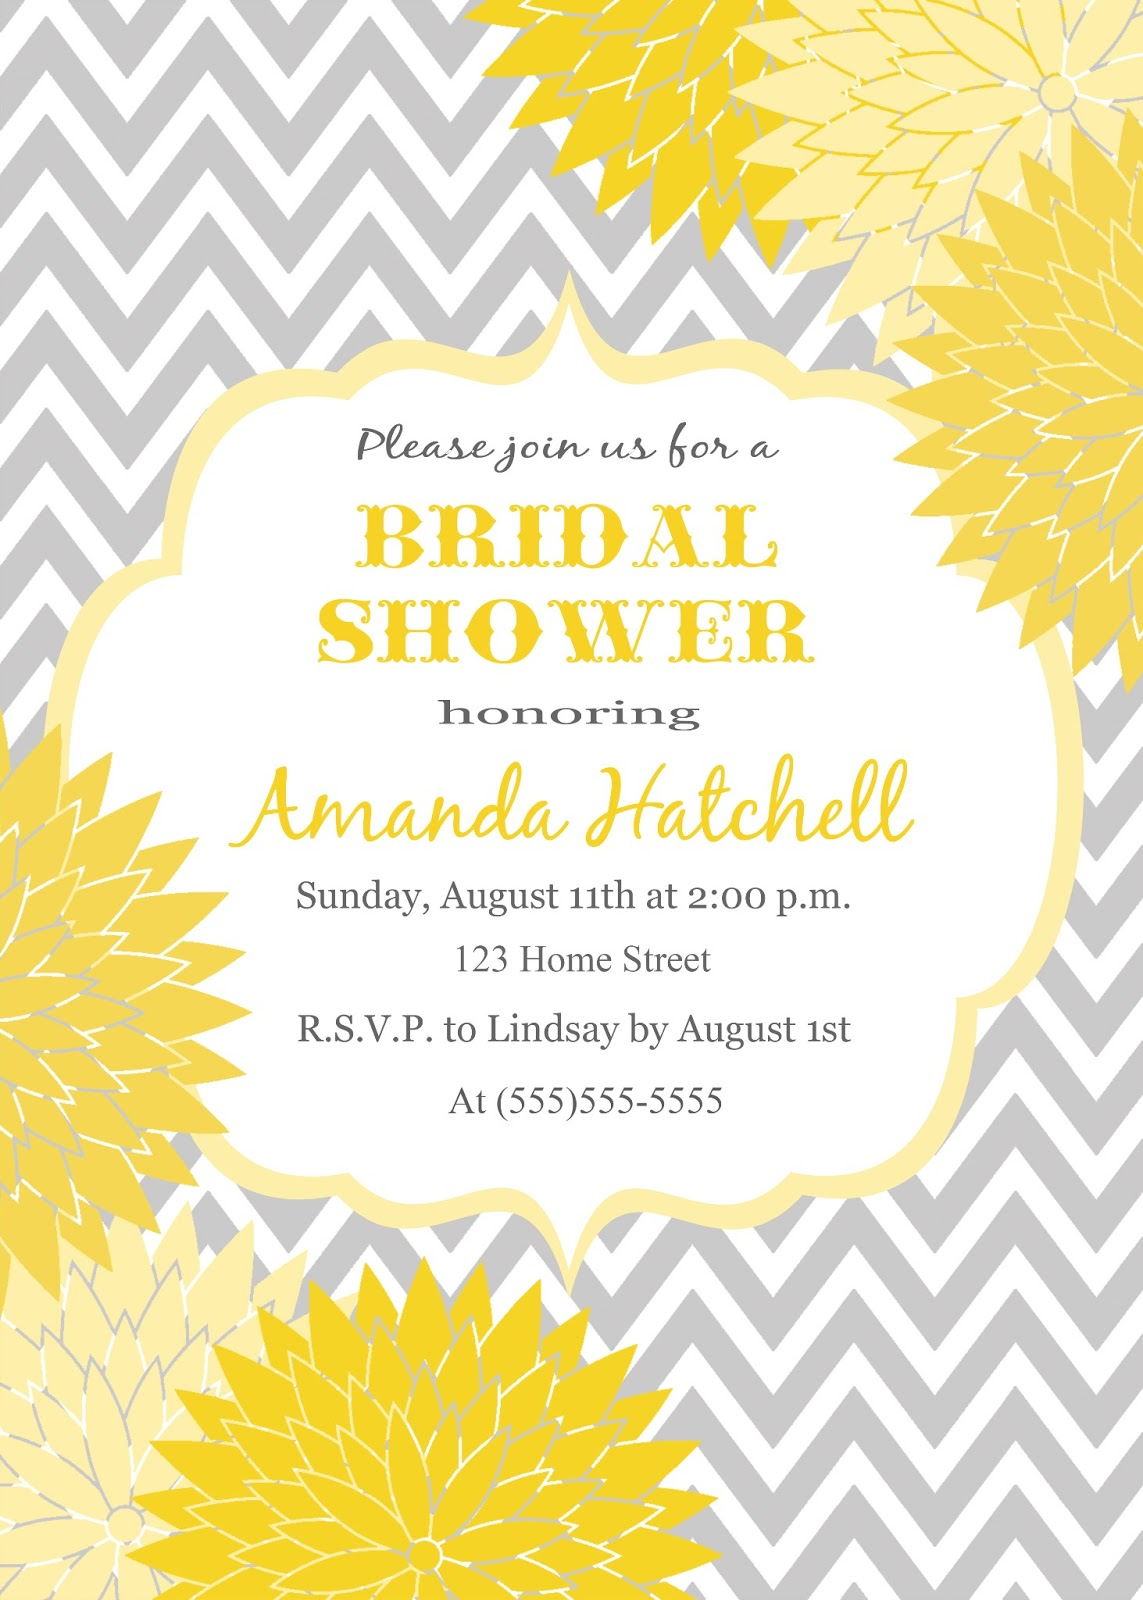 Bridal Shower Invitations Bridal Shower Invitations At Staples